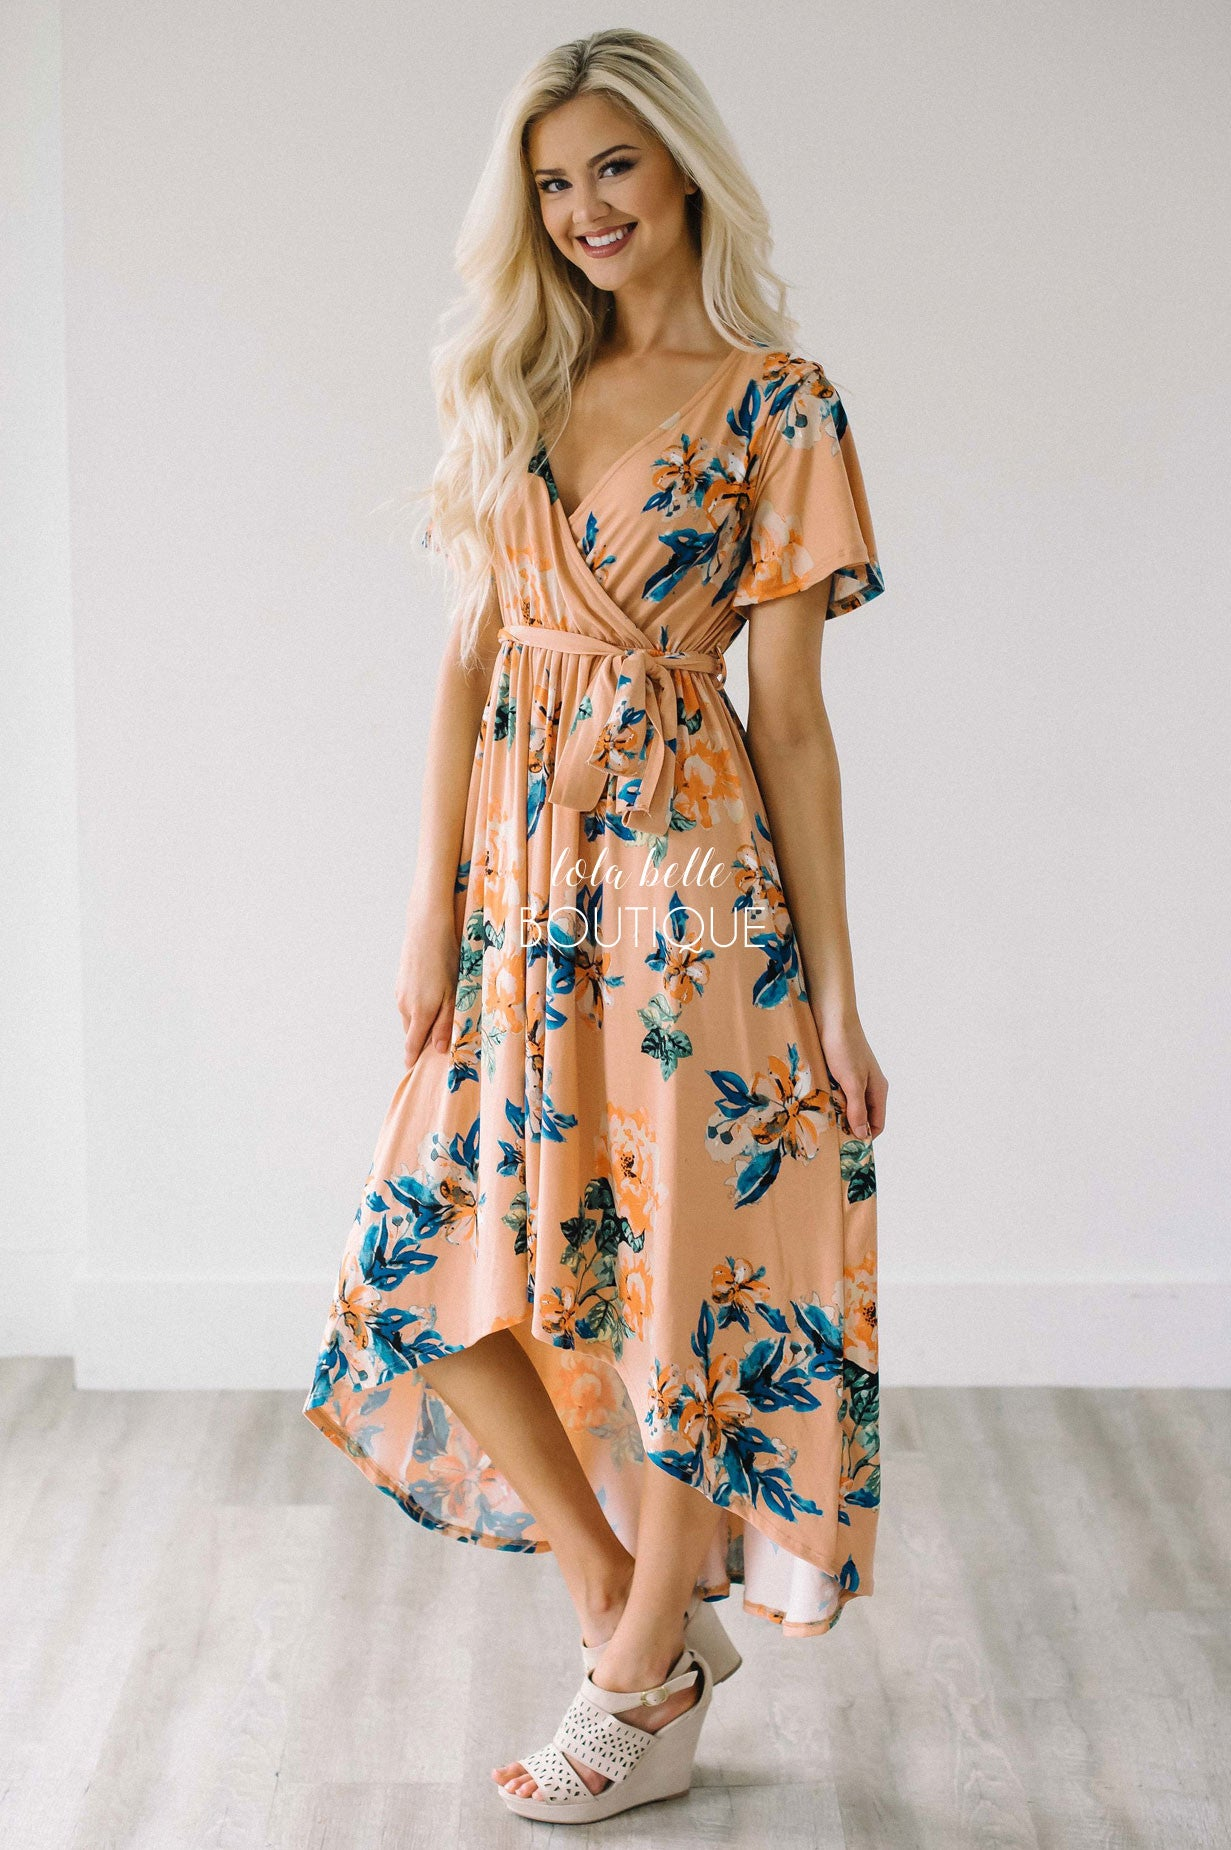 adb12e4764a8 Peach Tropical Floral Wrap Dress – Shop Lola Belle Boutique